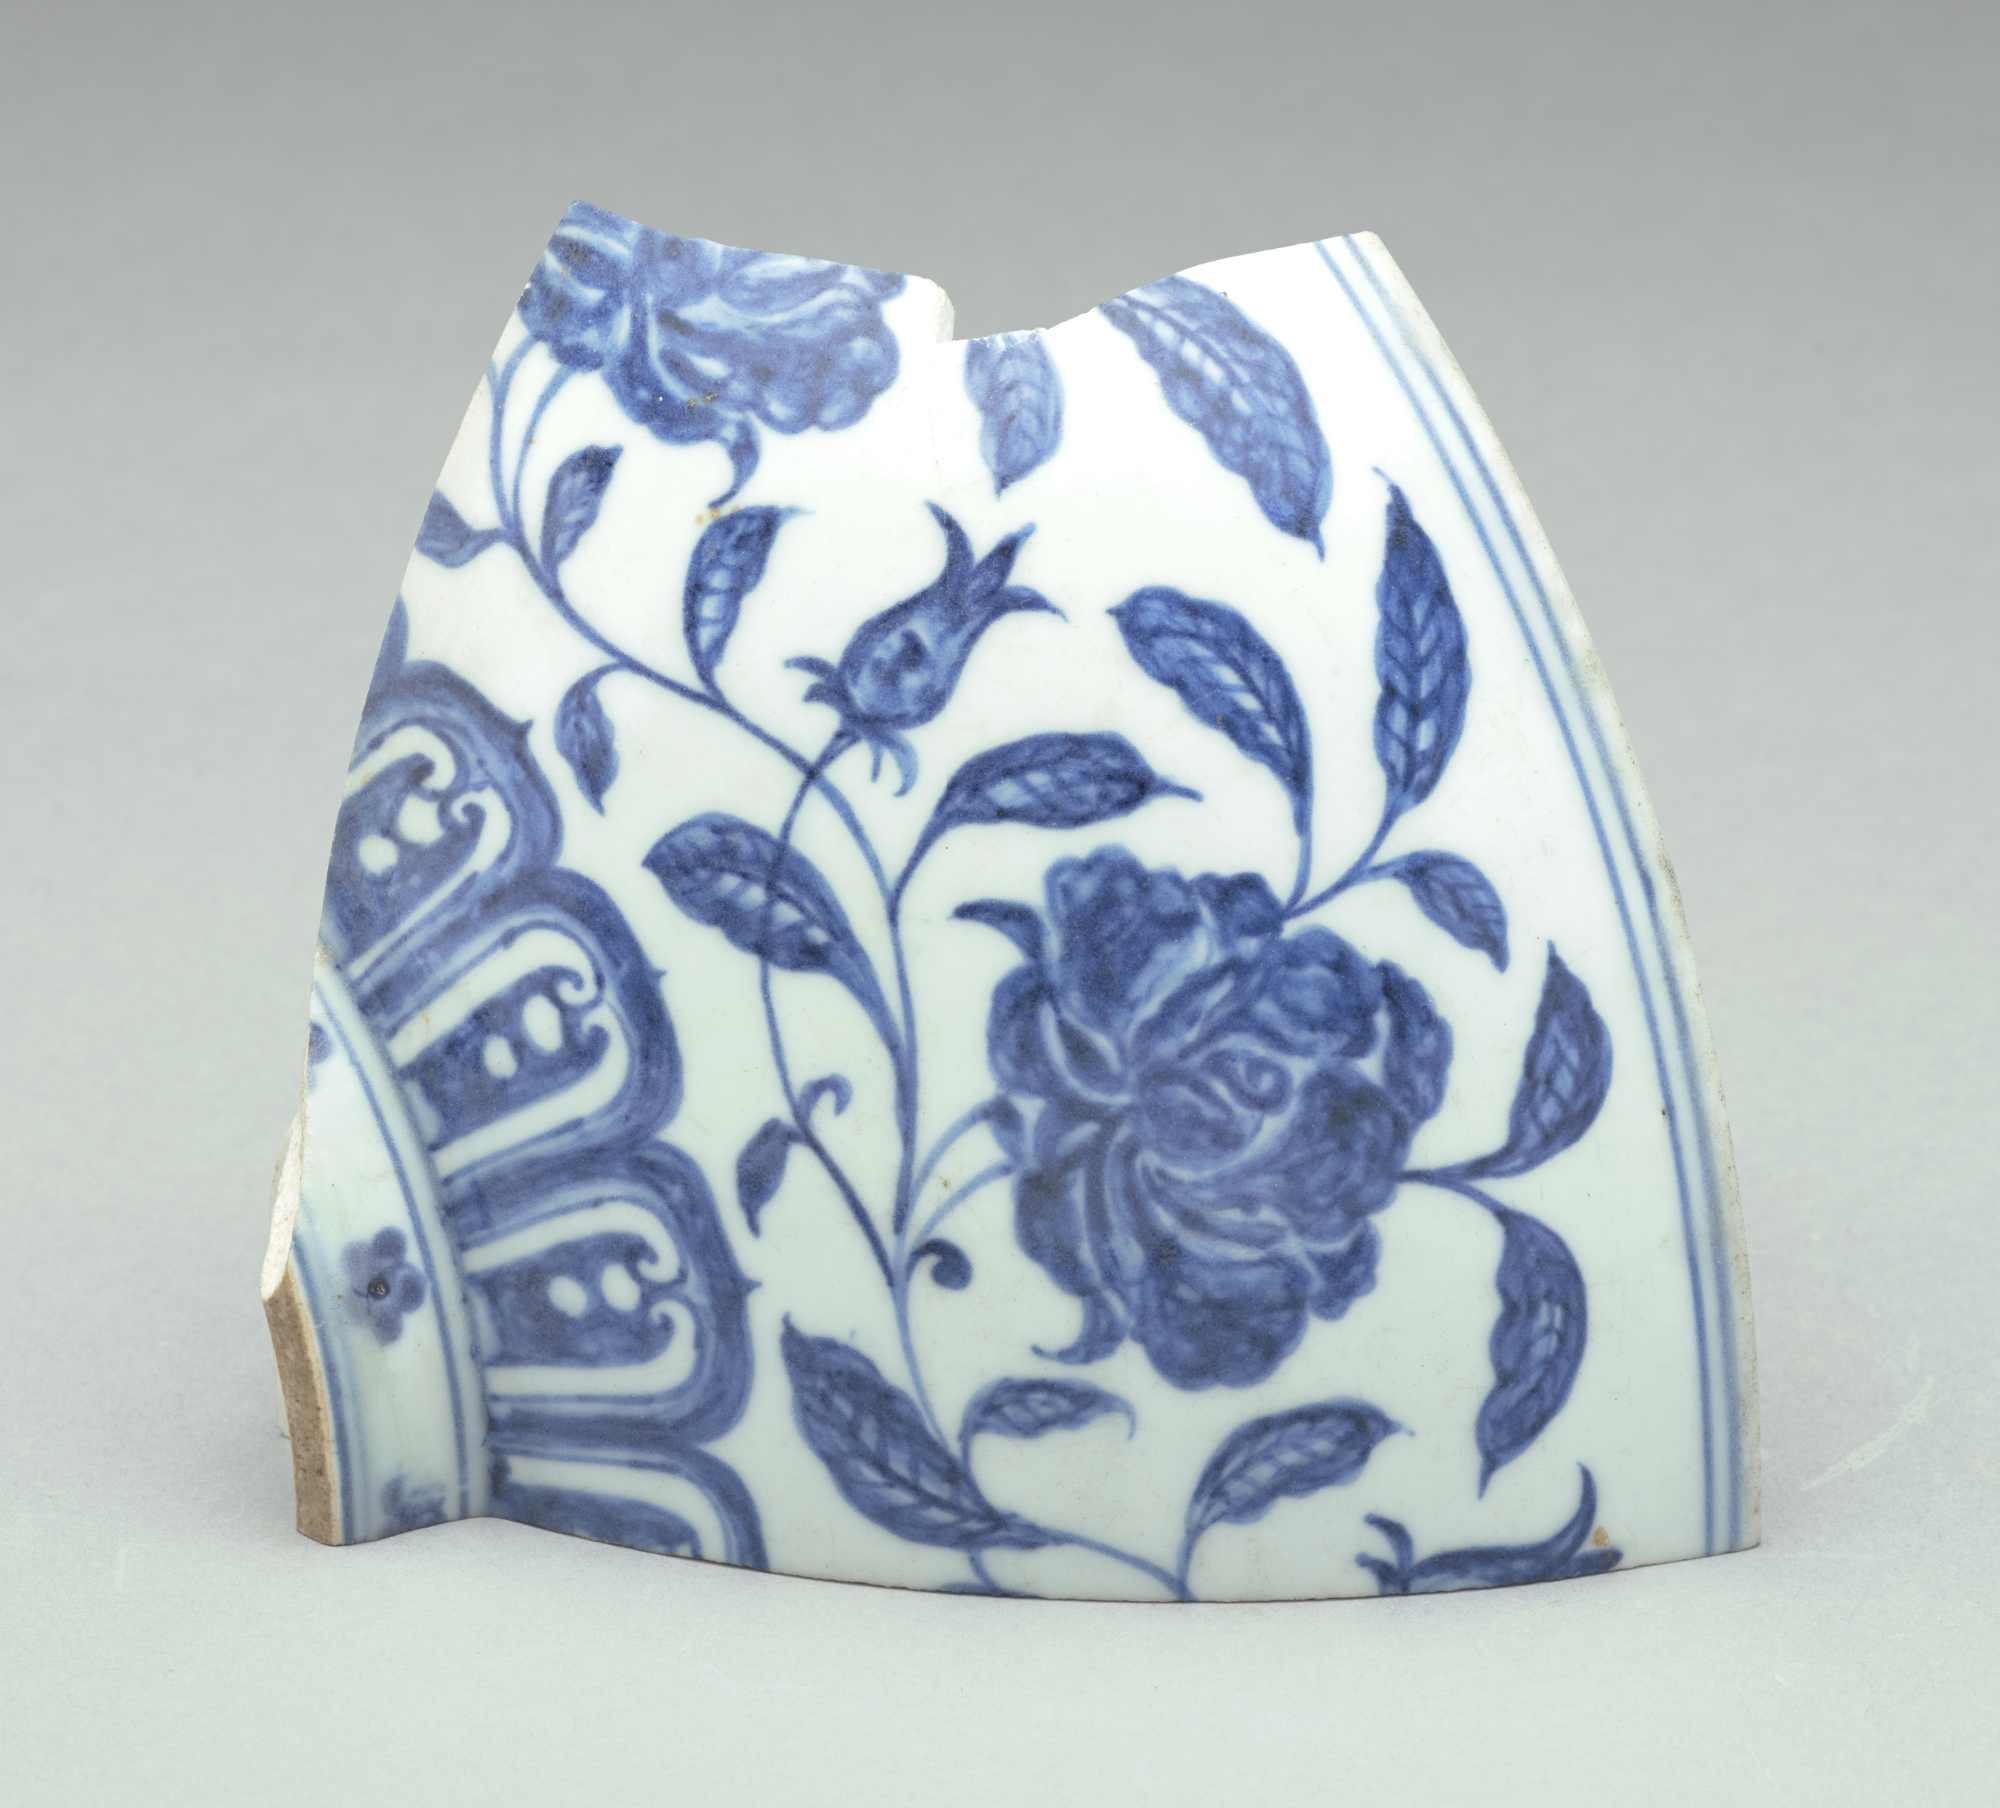 1 of 2 fragments of a blue-and-white bowl formerly in Mr. Johnson's collection (Goes with FSC-P-242)